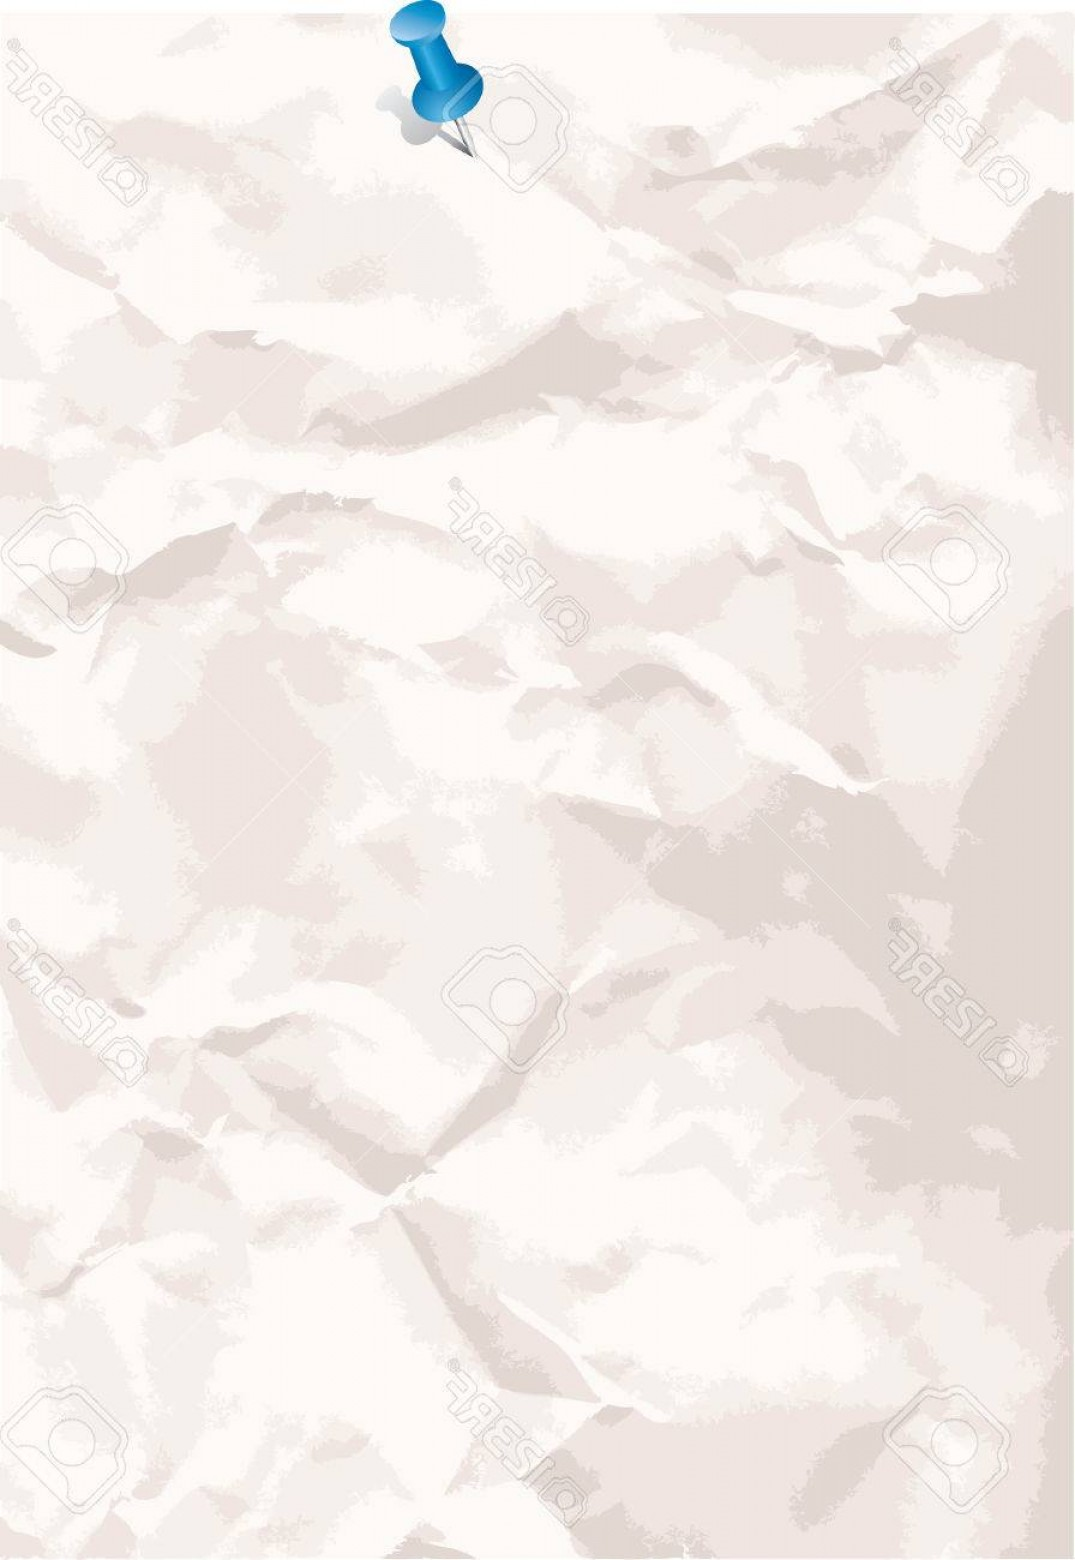 Crinkled Paper Vector: Photovector Crumpled Paper Background With Pin